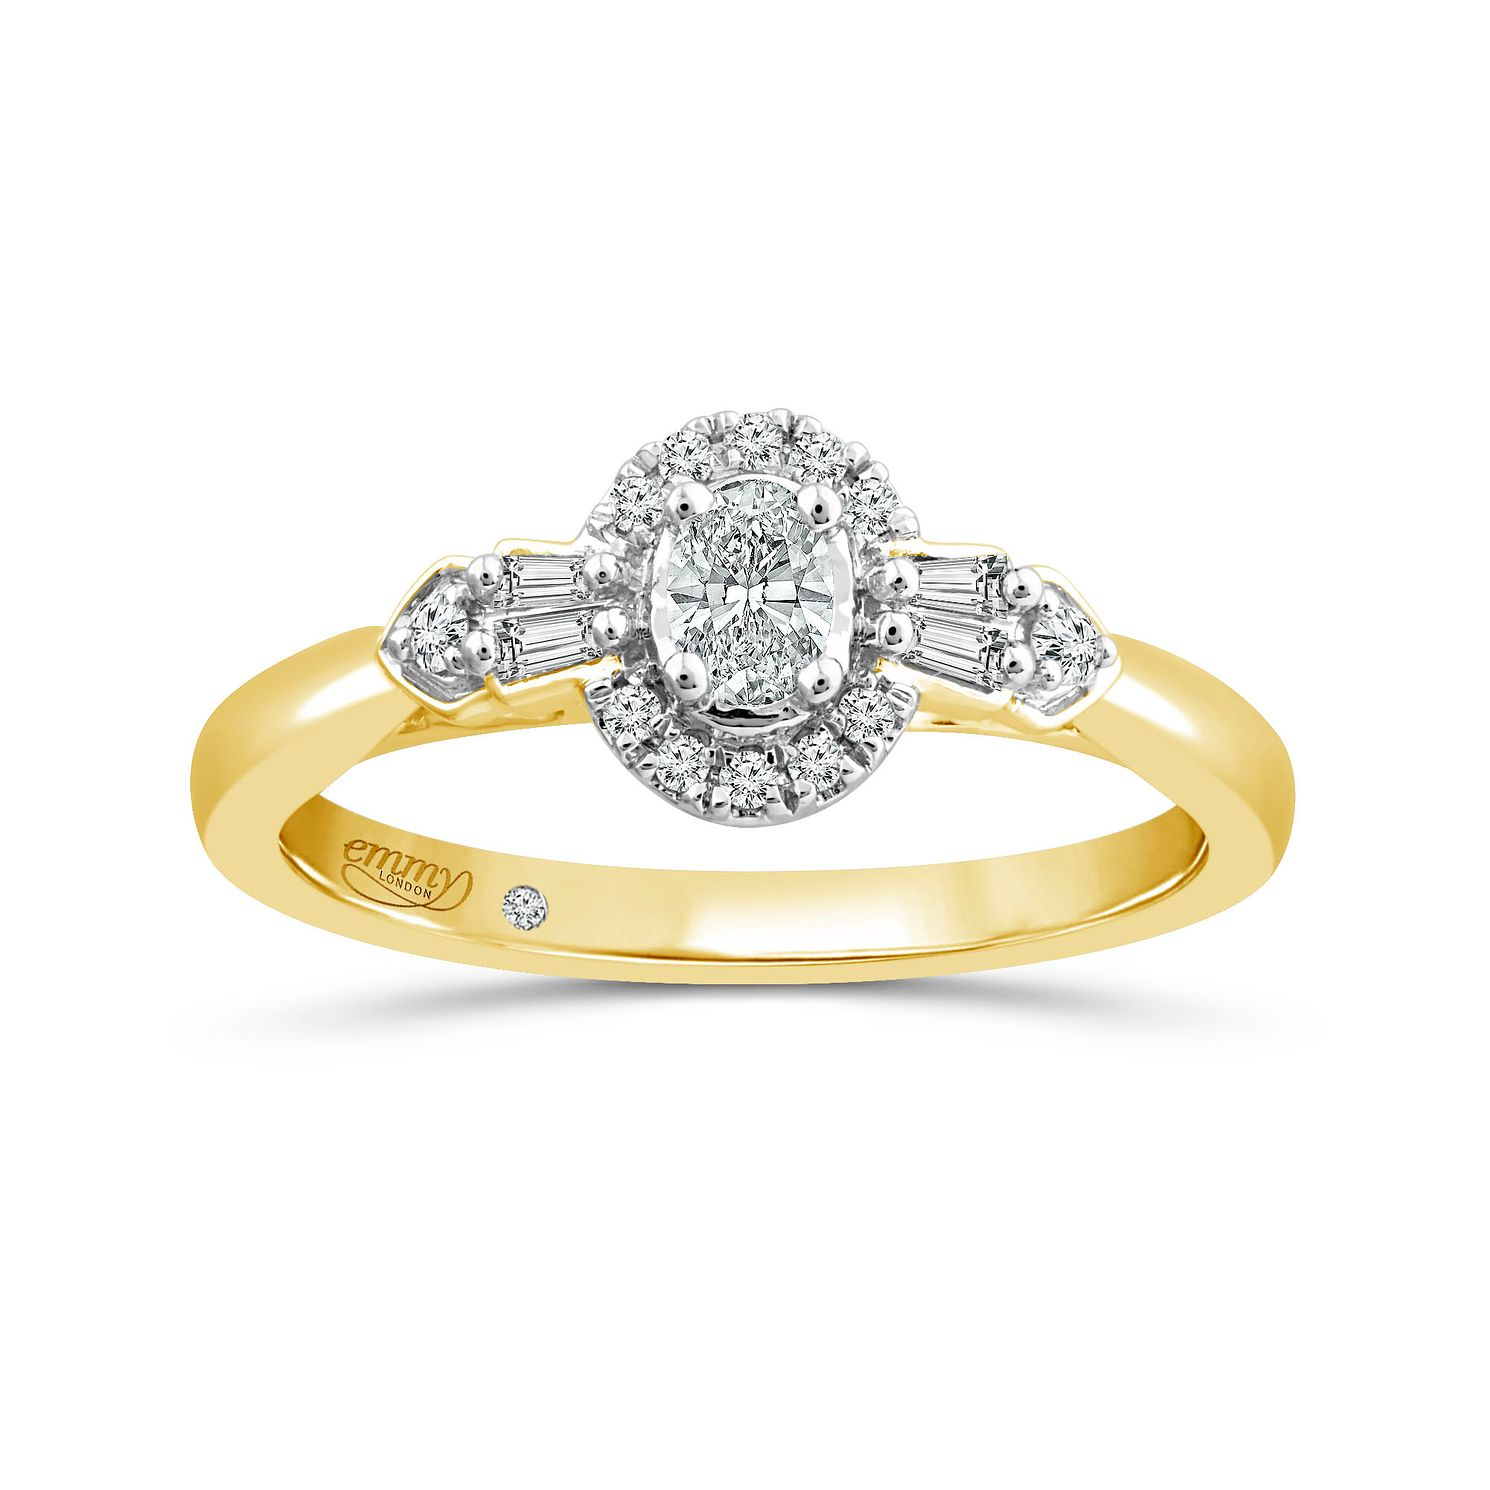 Emmy London 18ct Yellow Gold 1/4ct Diamond Ring - Product number 6036694